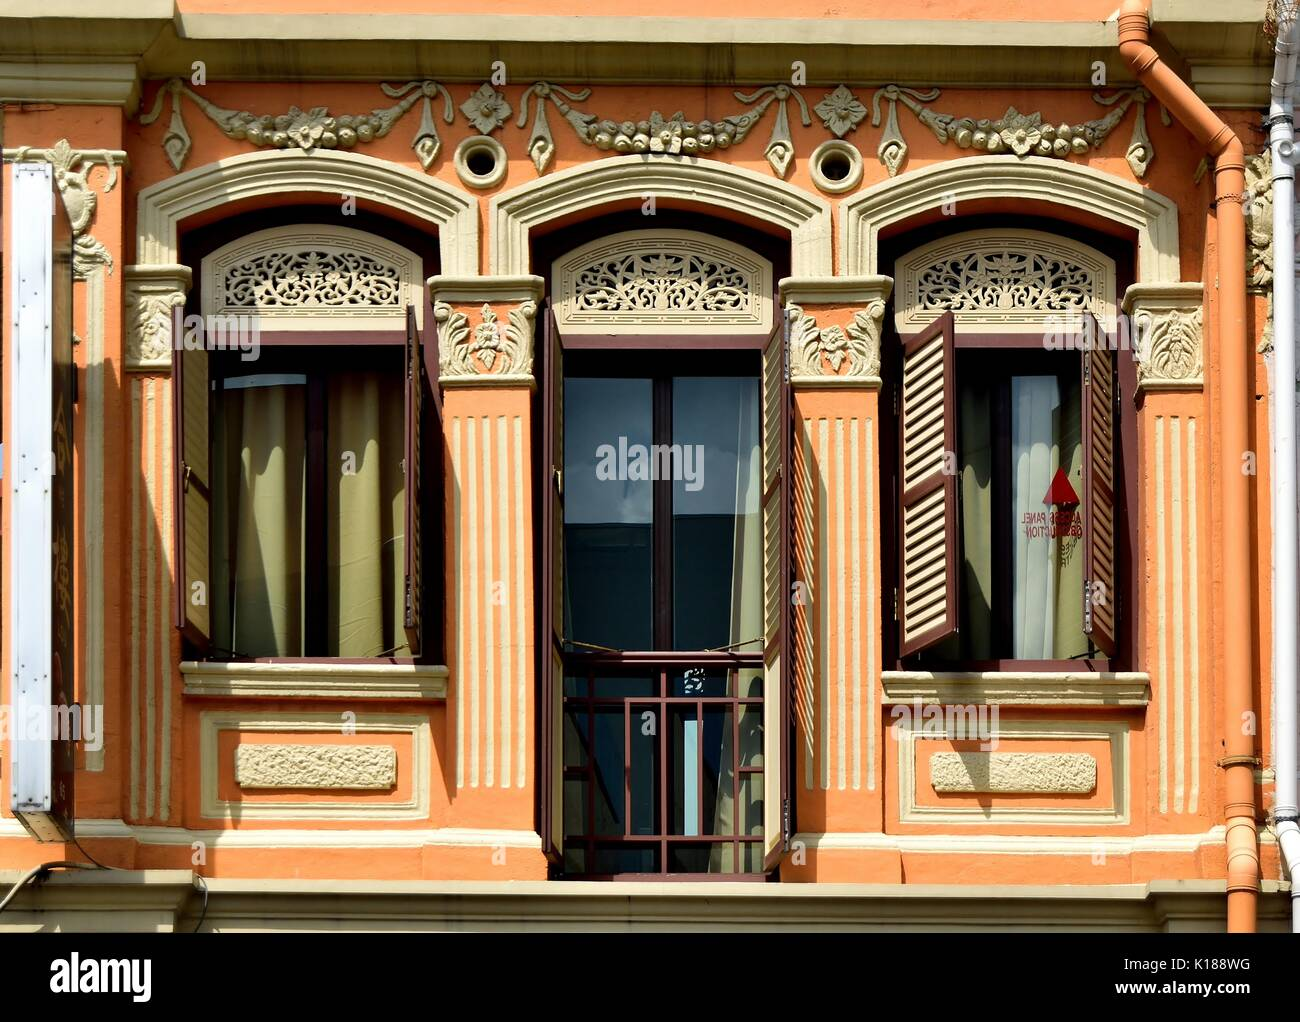 Traditional Shop House Exterior With Wooden Louvered Shutters, Peach Facade  And Fluted Corinthian Columns In The Little India District Of Singapore